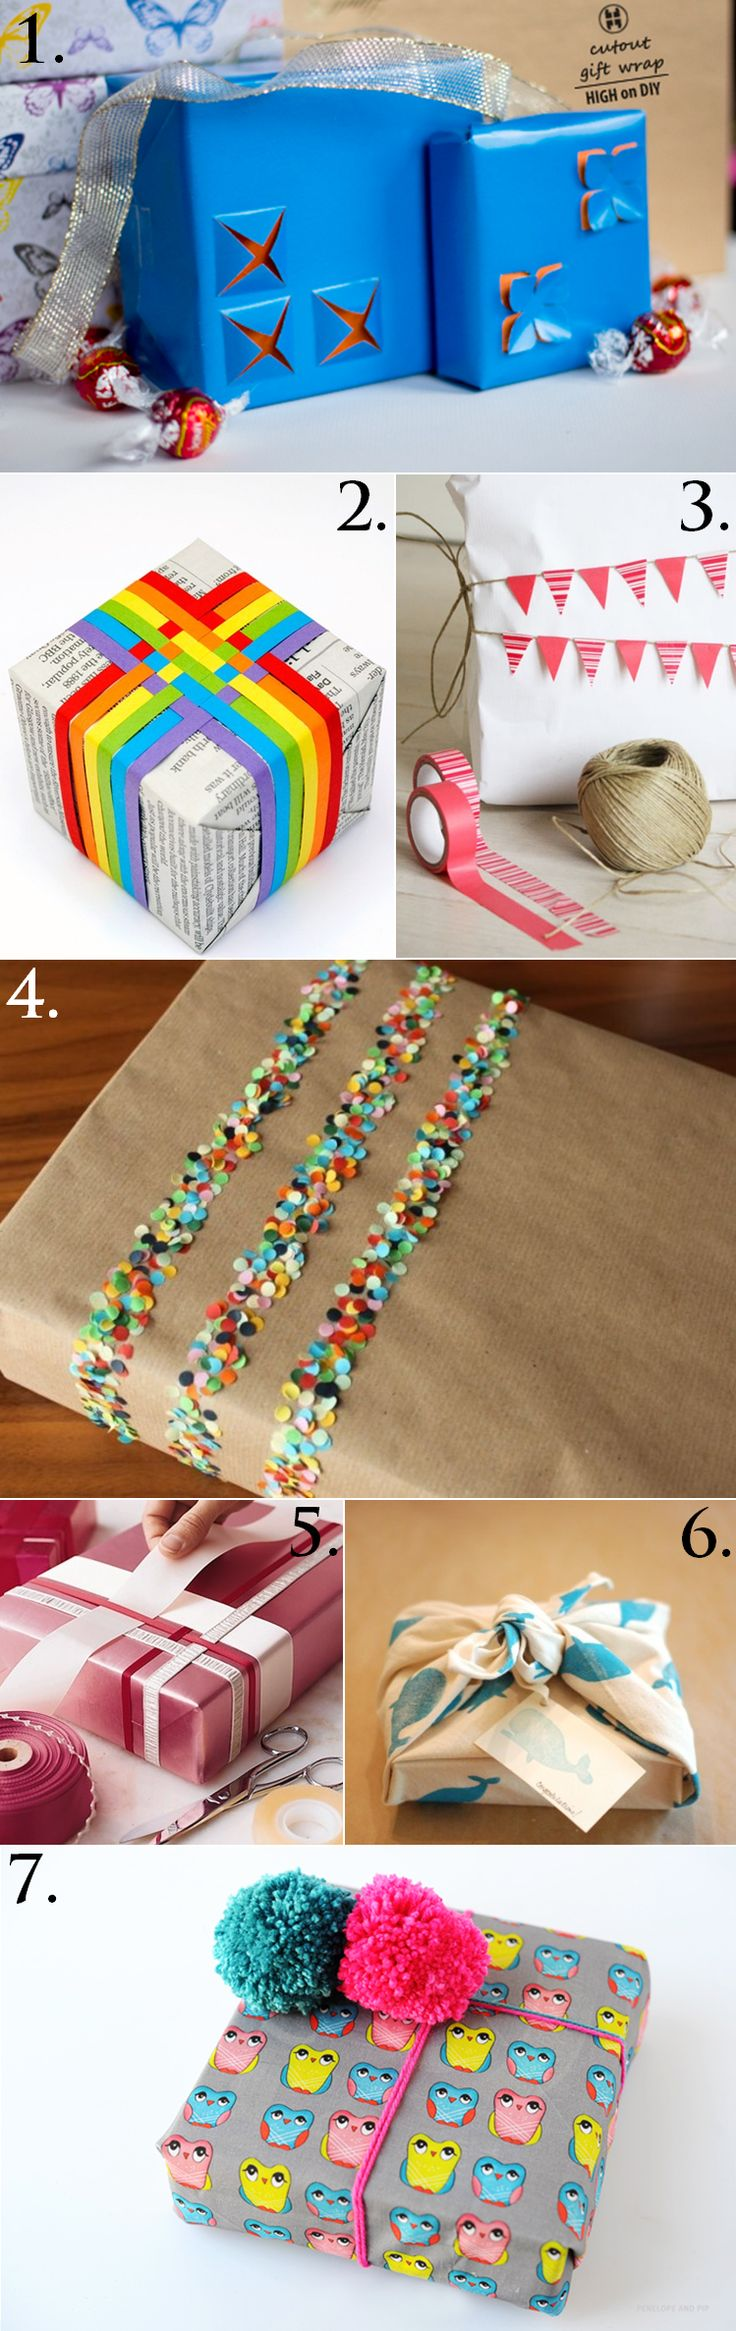 Beautiful gift wrapping ideas... I wish I could read the instructions! Lol